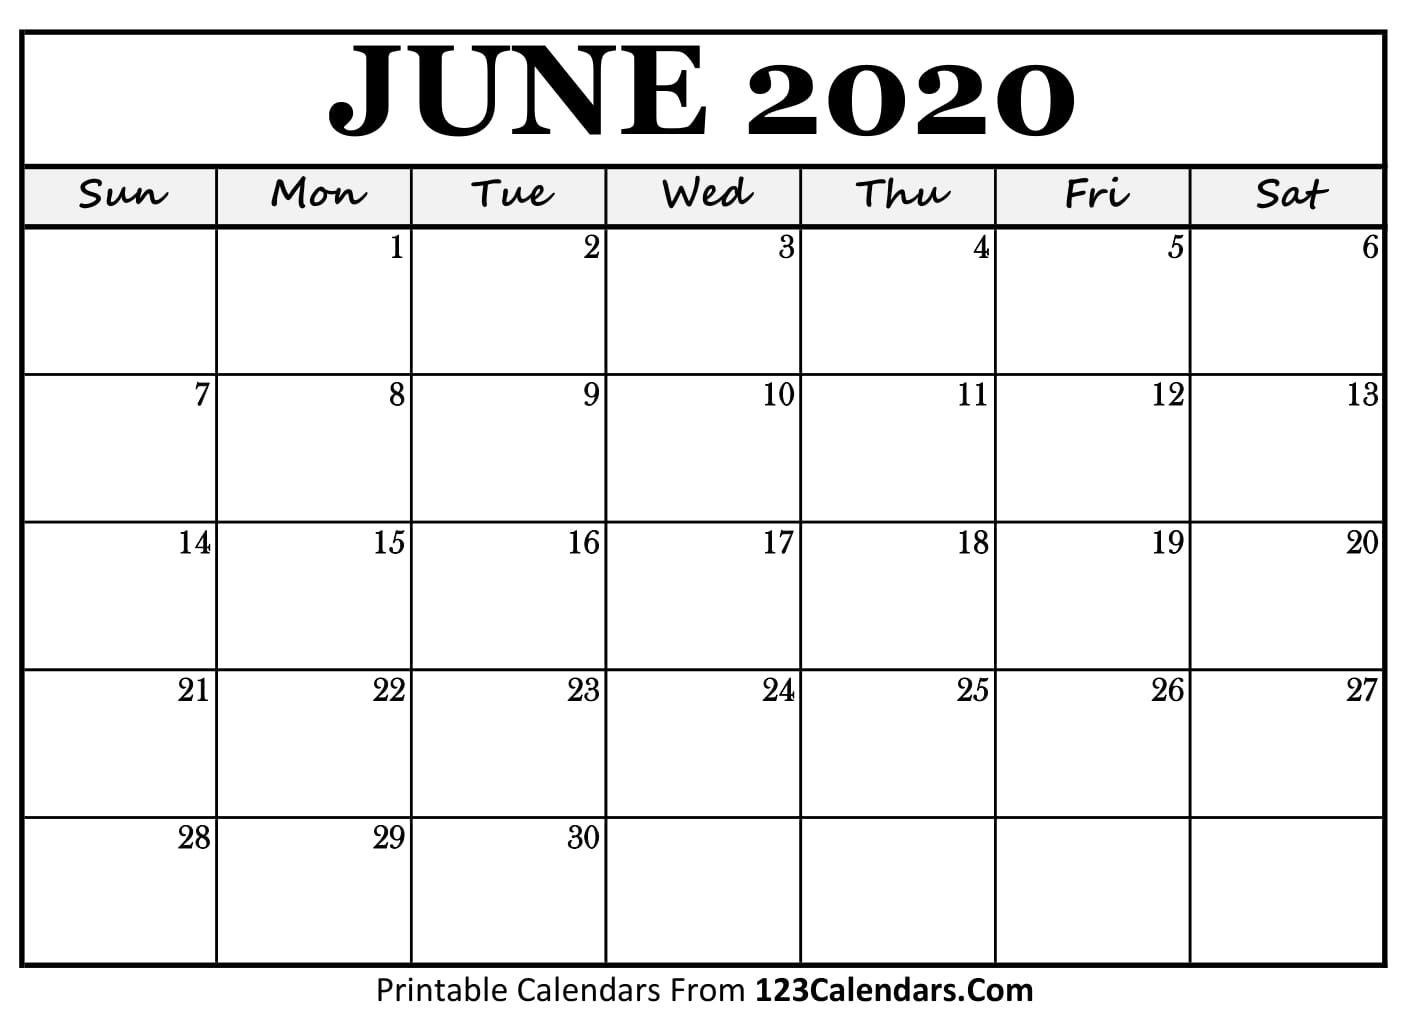 graphic about June Printable Calendar titled June 2020 Printable Calendar